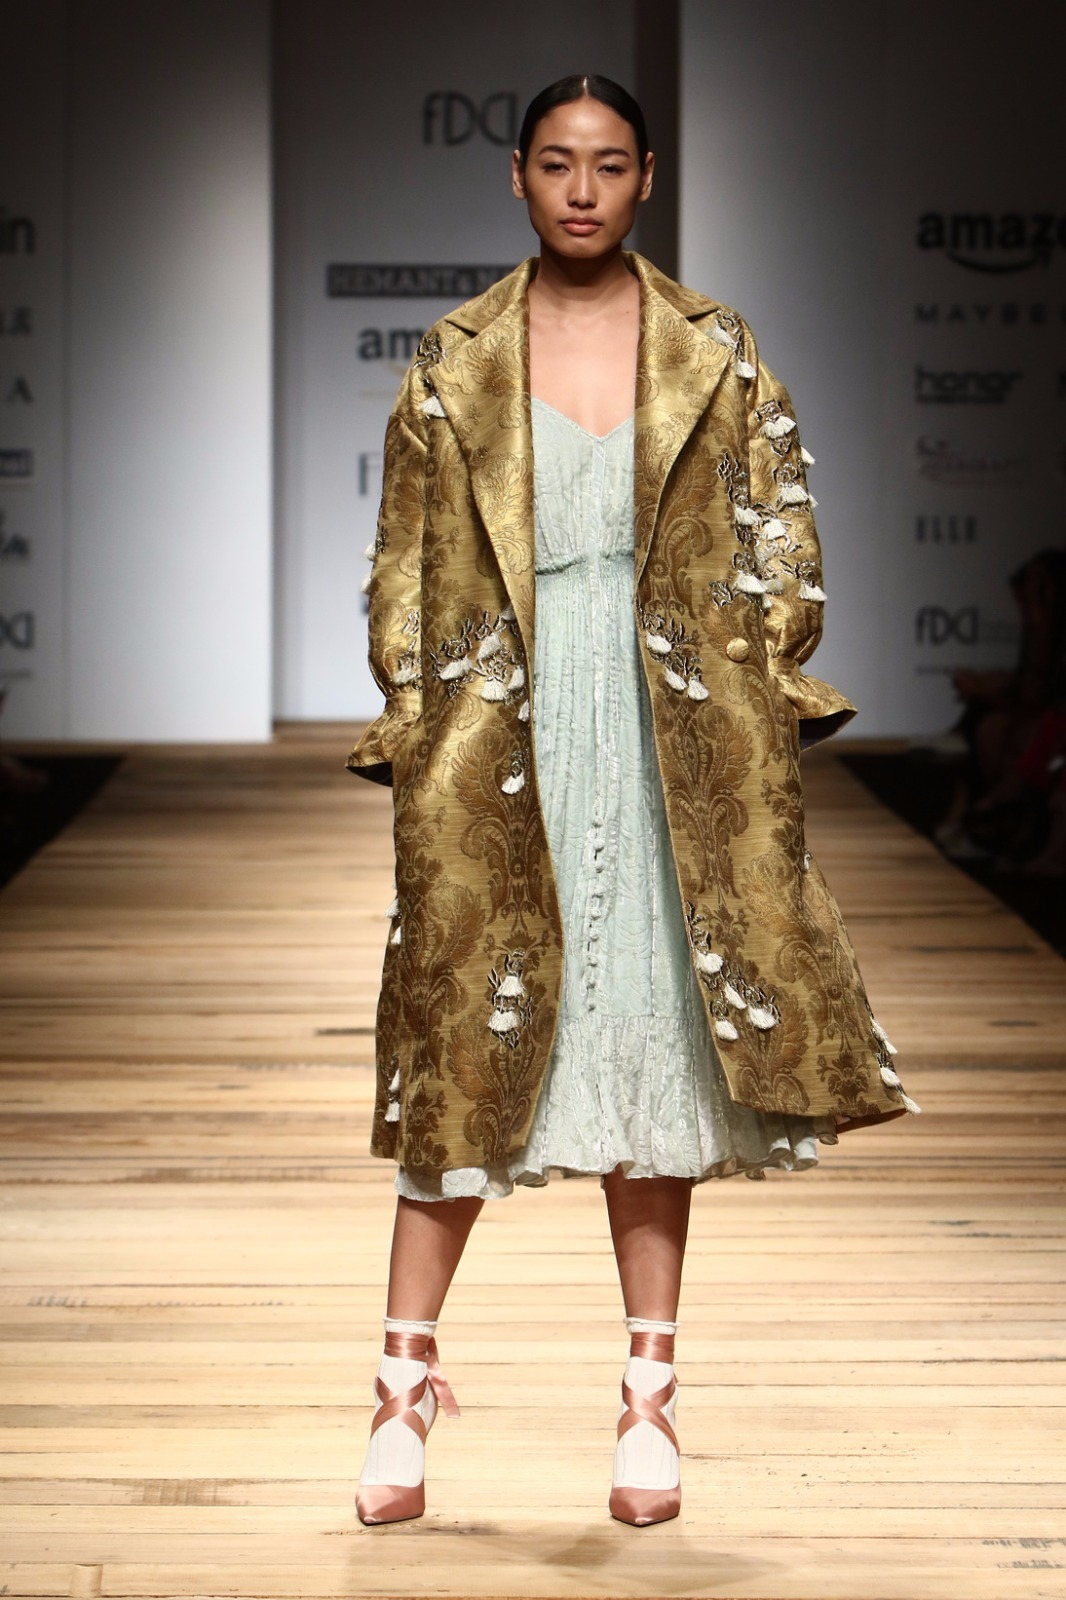 http://www.talksassy.com/wp-content/uploads/2017/03/Amazon-India-Fashion-Week-Autumn-Winter-2017-44.jpg